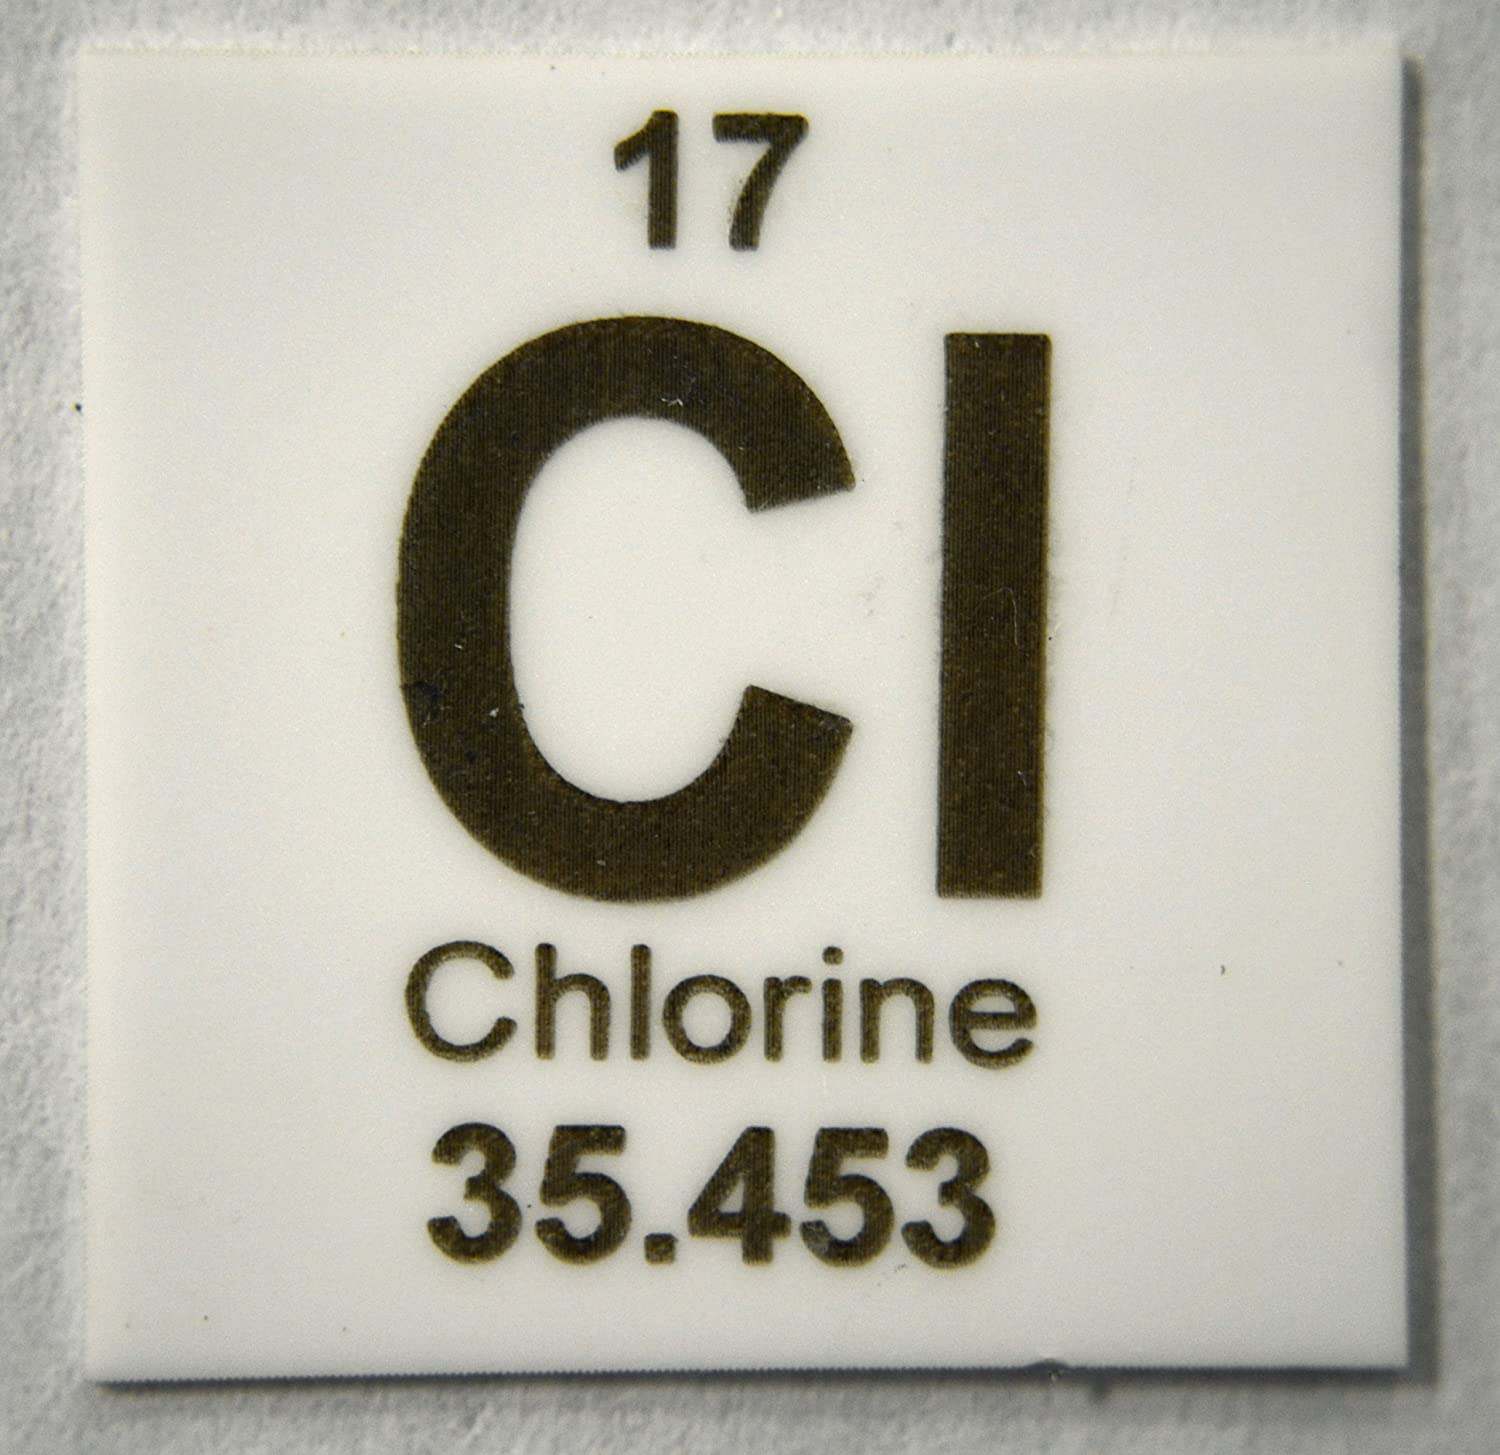 Amazon Chlorine 1 X 1 Elemental Ceramic Column Scoring Wafer